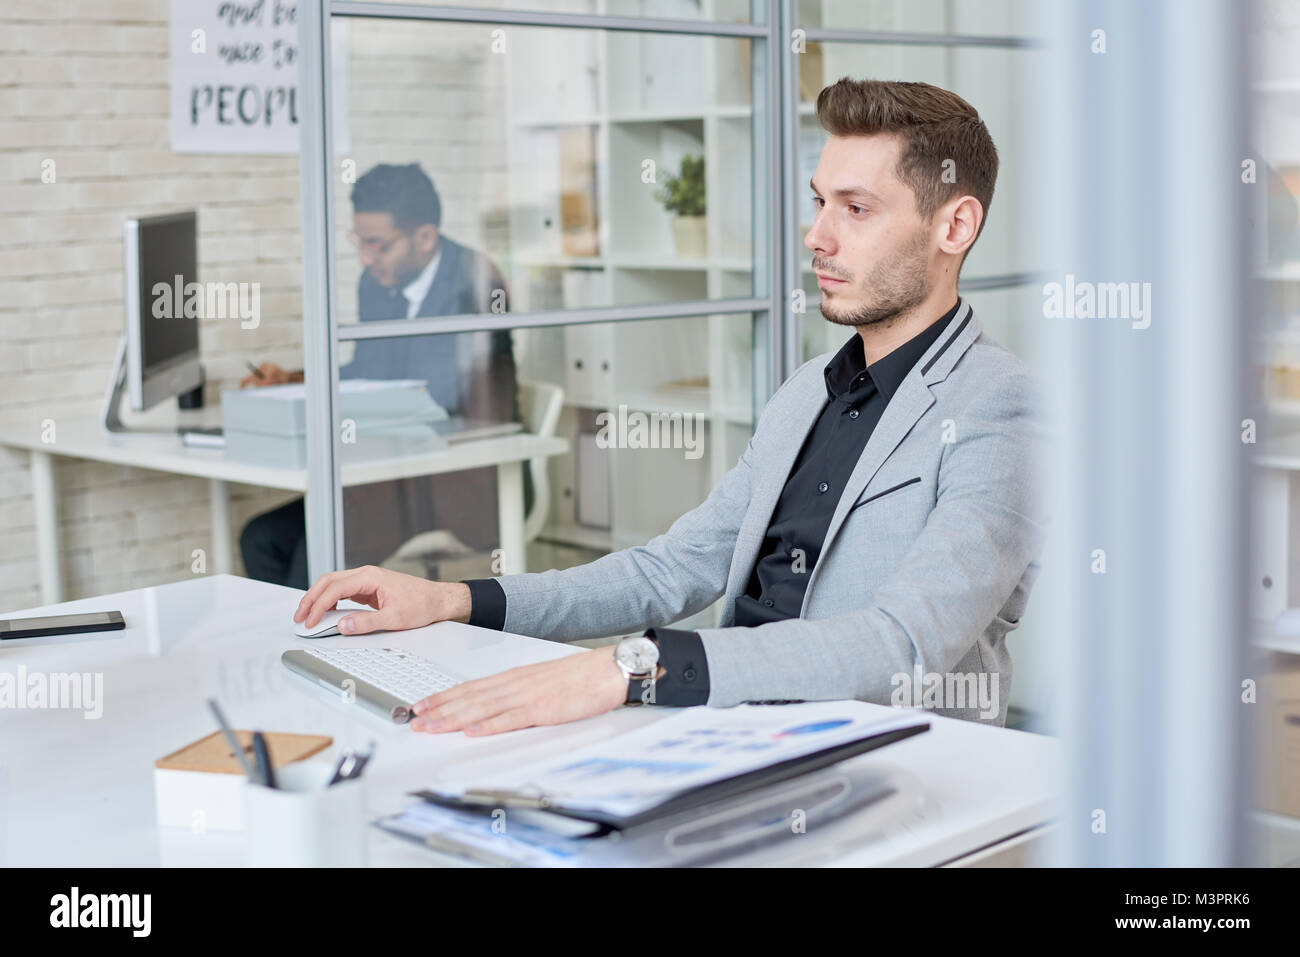 Young Businessman Working in Cubicle - Stock Image